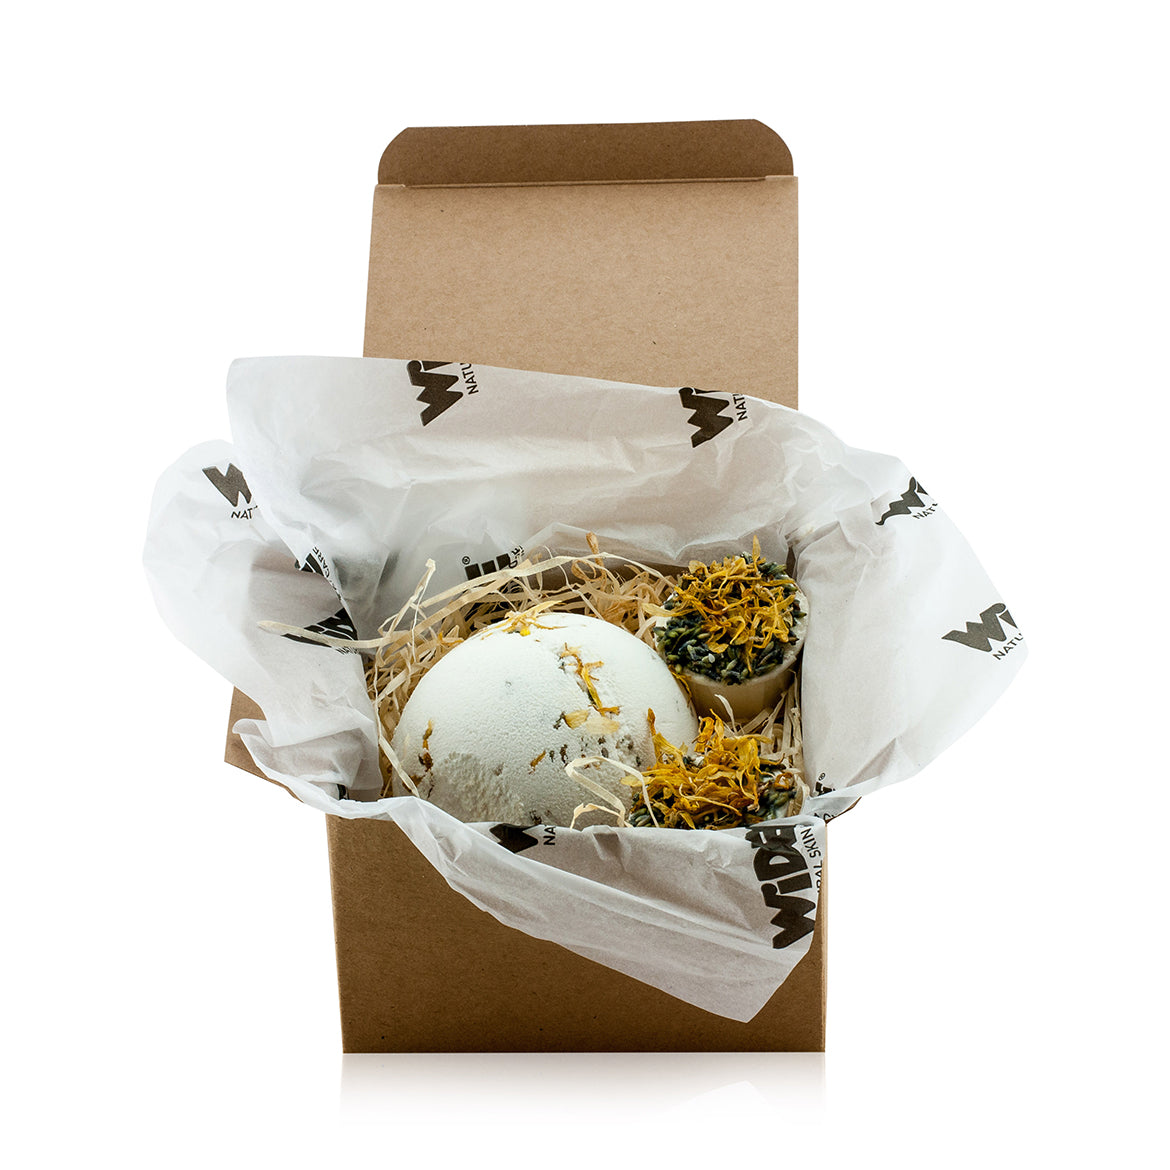 Natural vegan skincare Mini 'Beach Bum' gift box with a bath bomb and butter cups, handmade by WiDEYE in Rye.